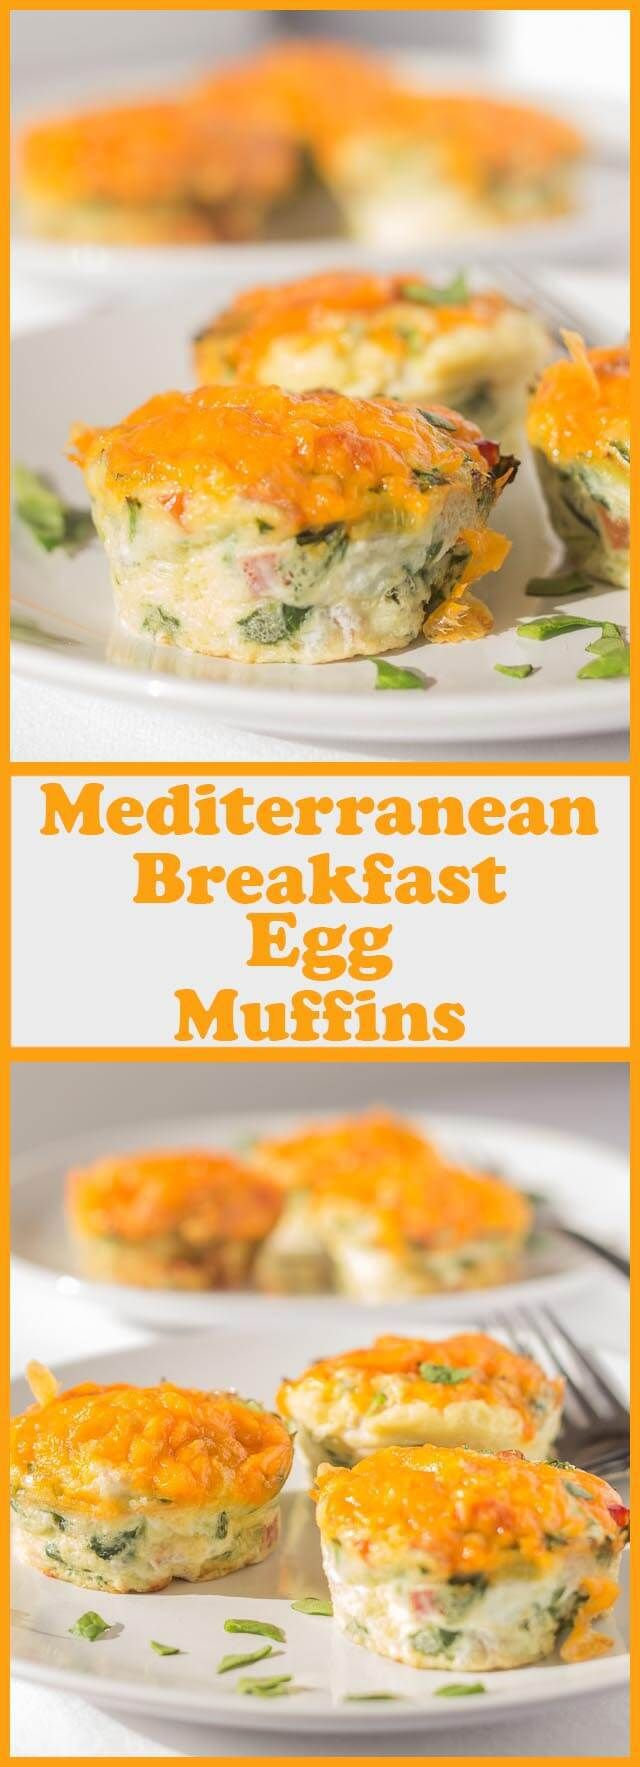 Mediterranean breakfast egg muffins are a delicious and healthy way to start your weekend. This simple, versatile recipe is low carb, packed with protein and low in calories too. This quick healthy meal will allow you to get on with enjoying your weekend,